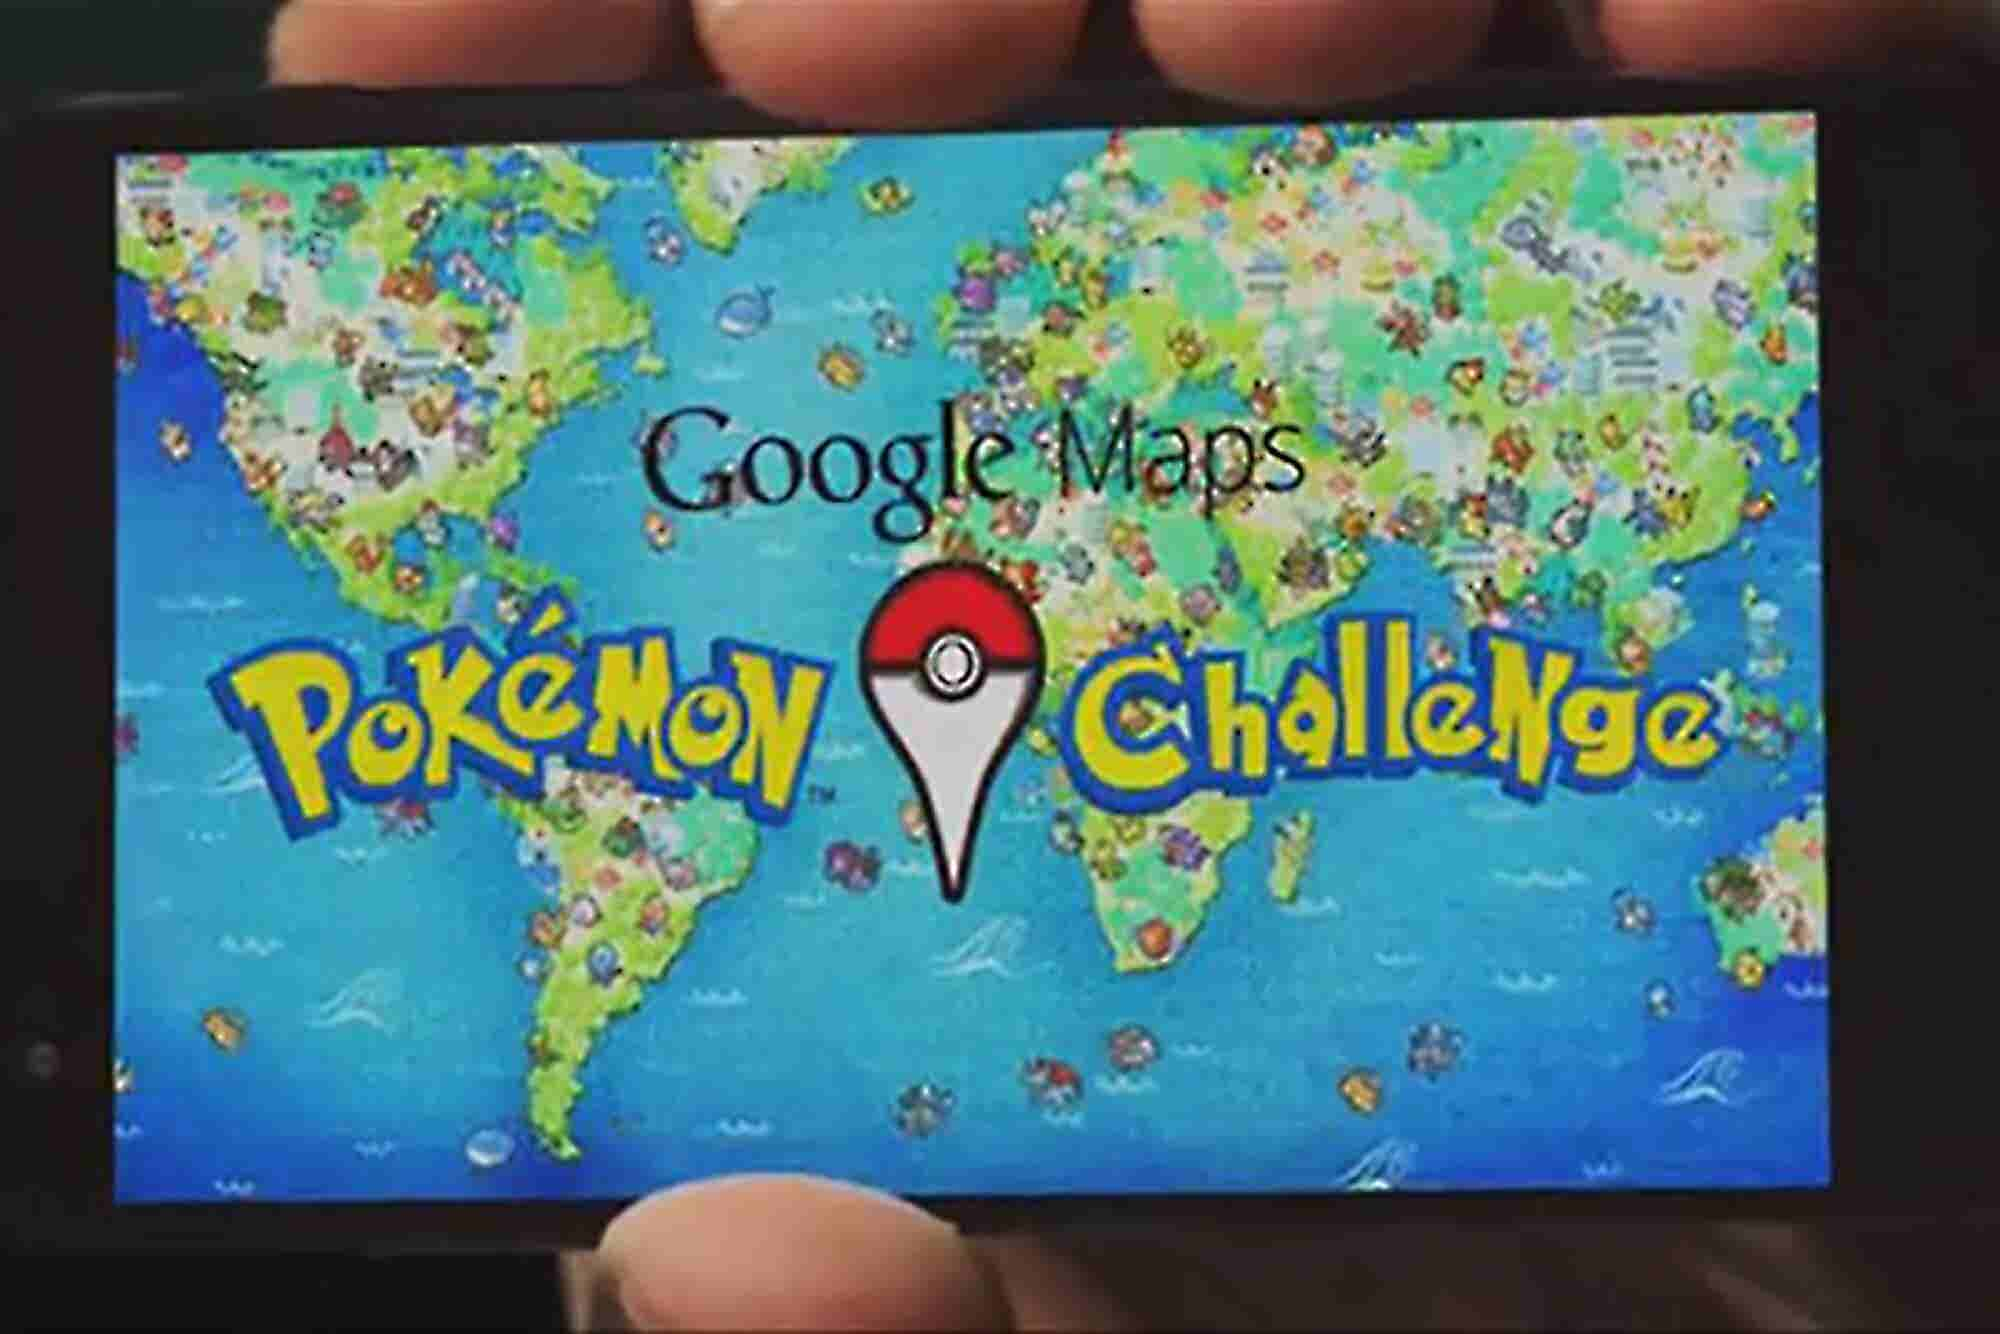 So Google's Hiring a Pokémon Master, Eh? The Best April Fools' Day Pranks of 2014